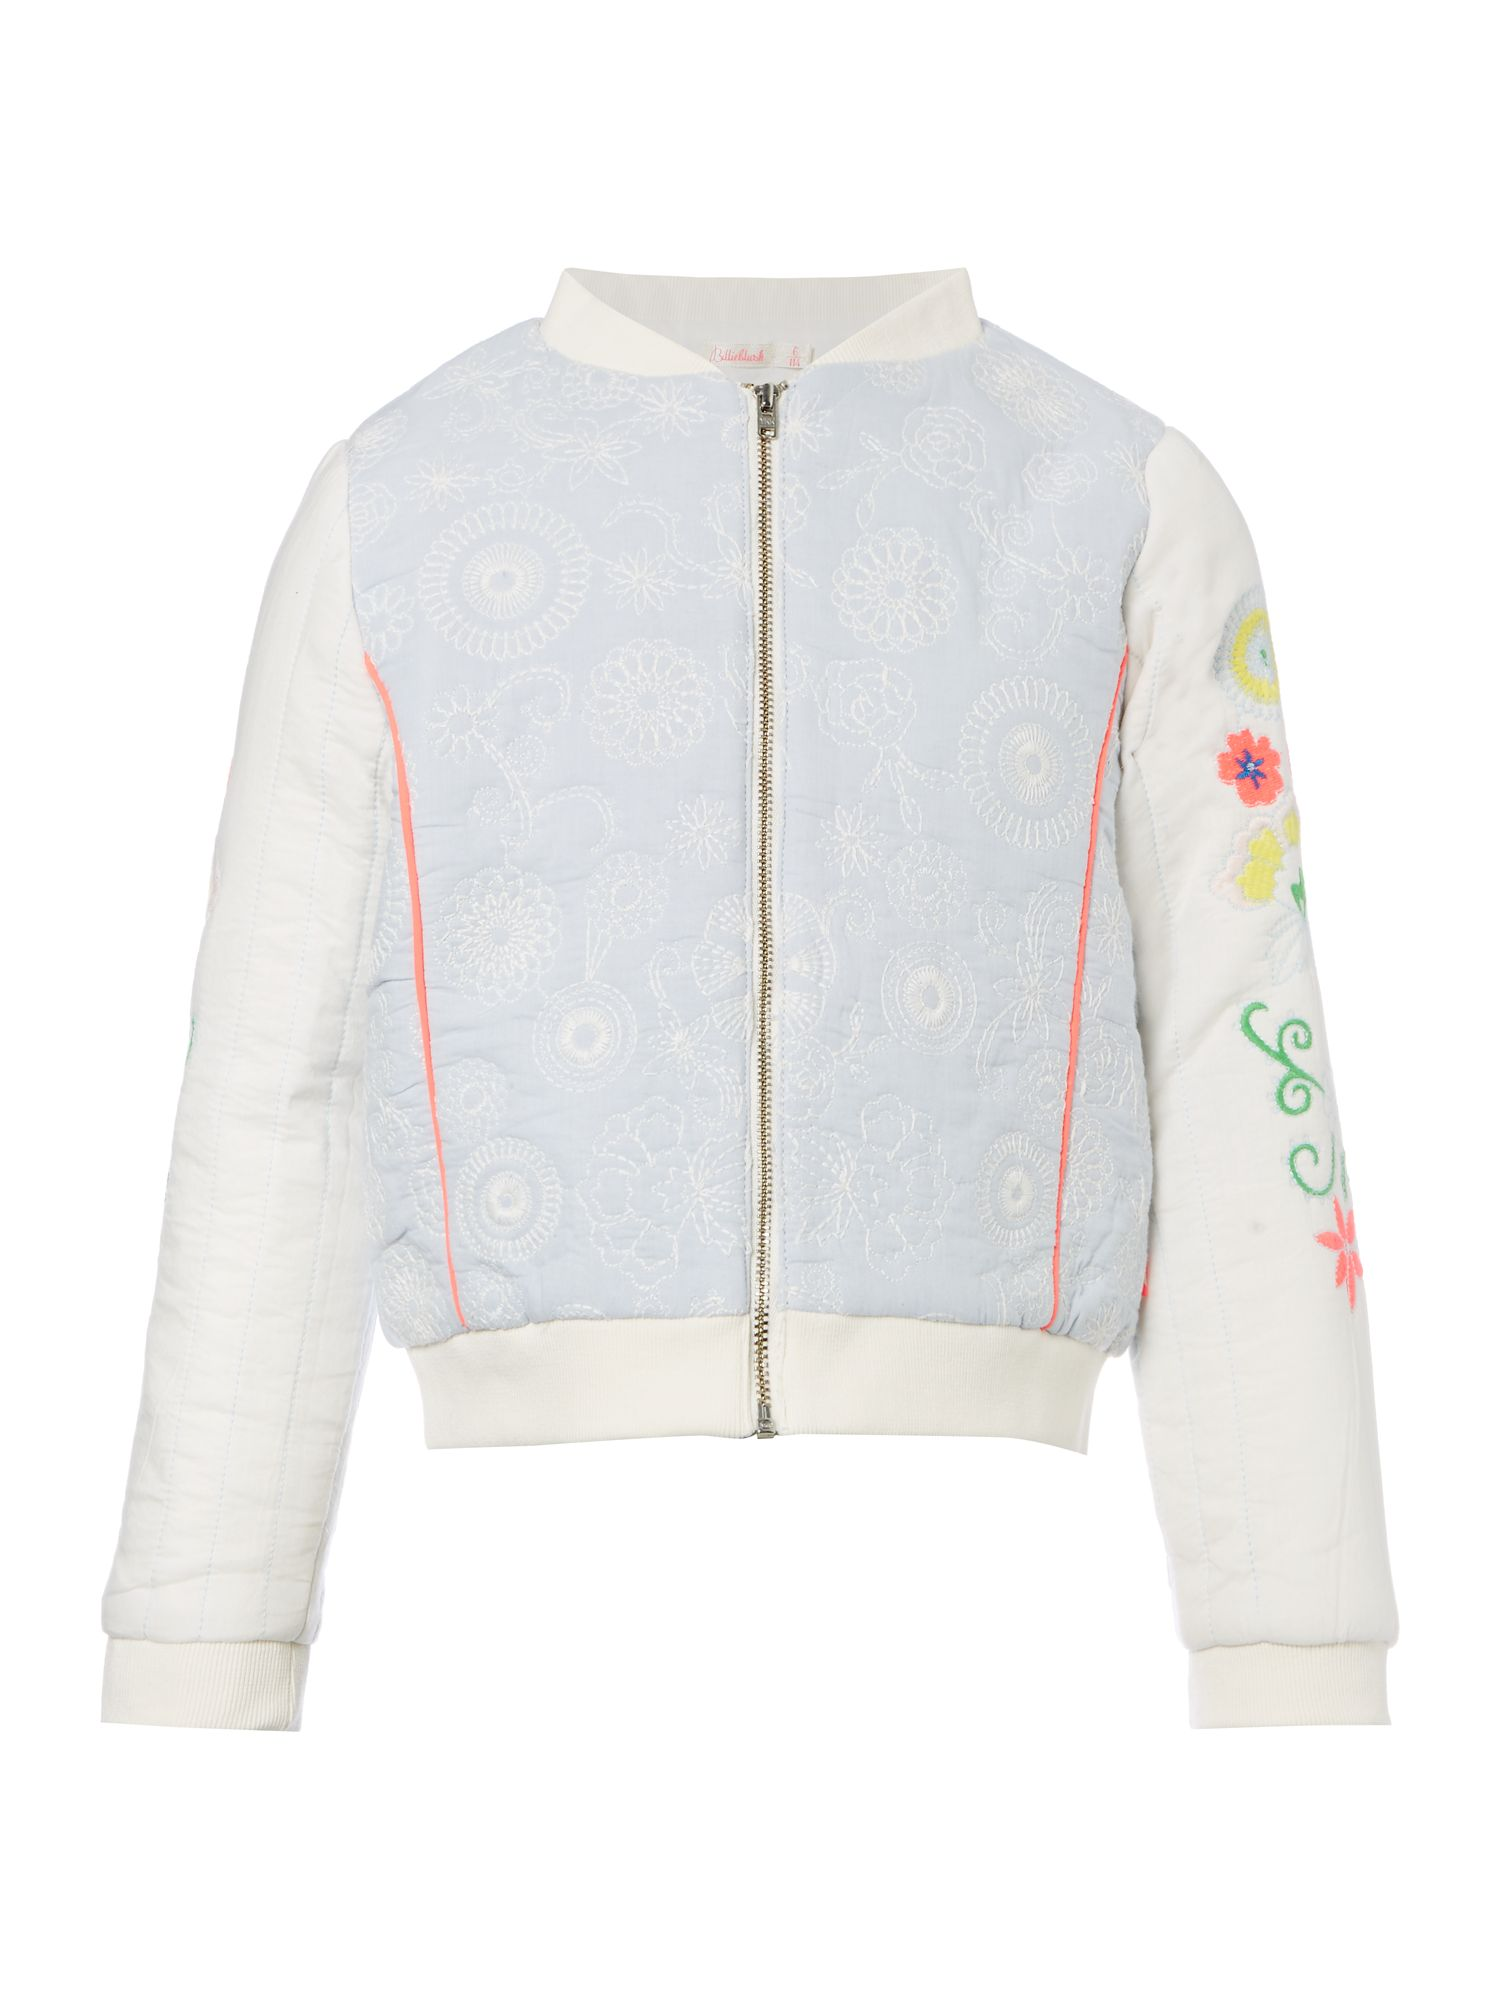 Billieblush Billieblush Girls Blouson, Multi-Coloured